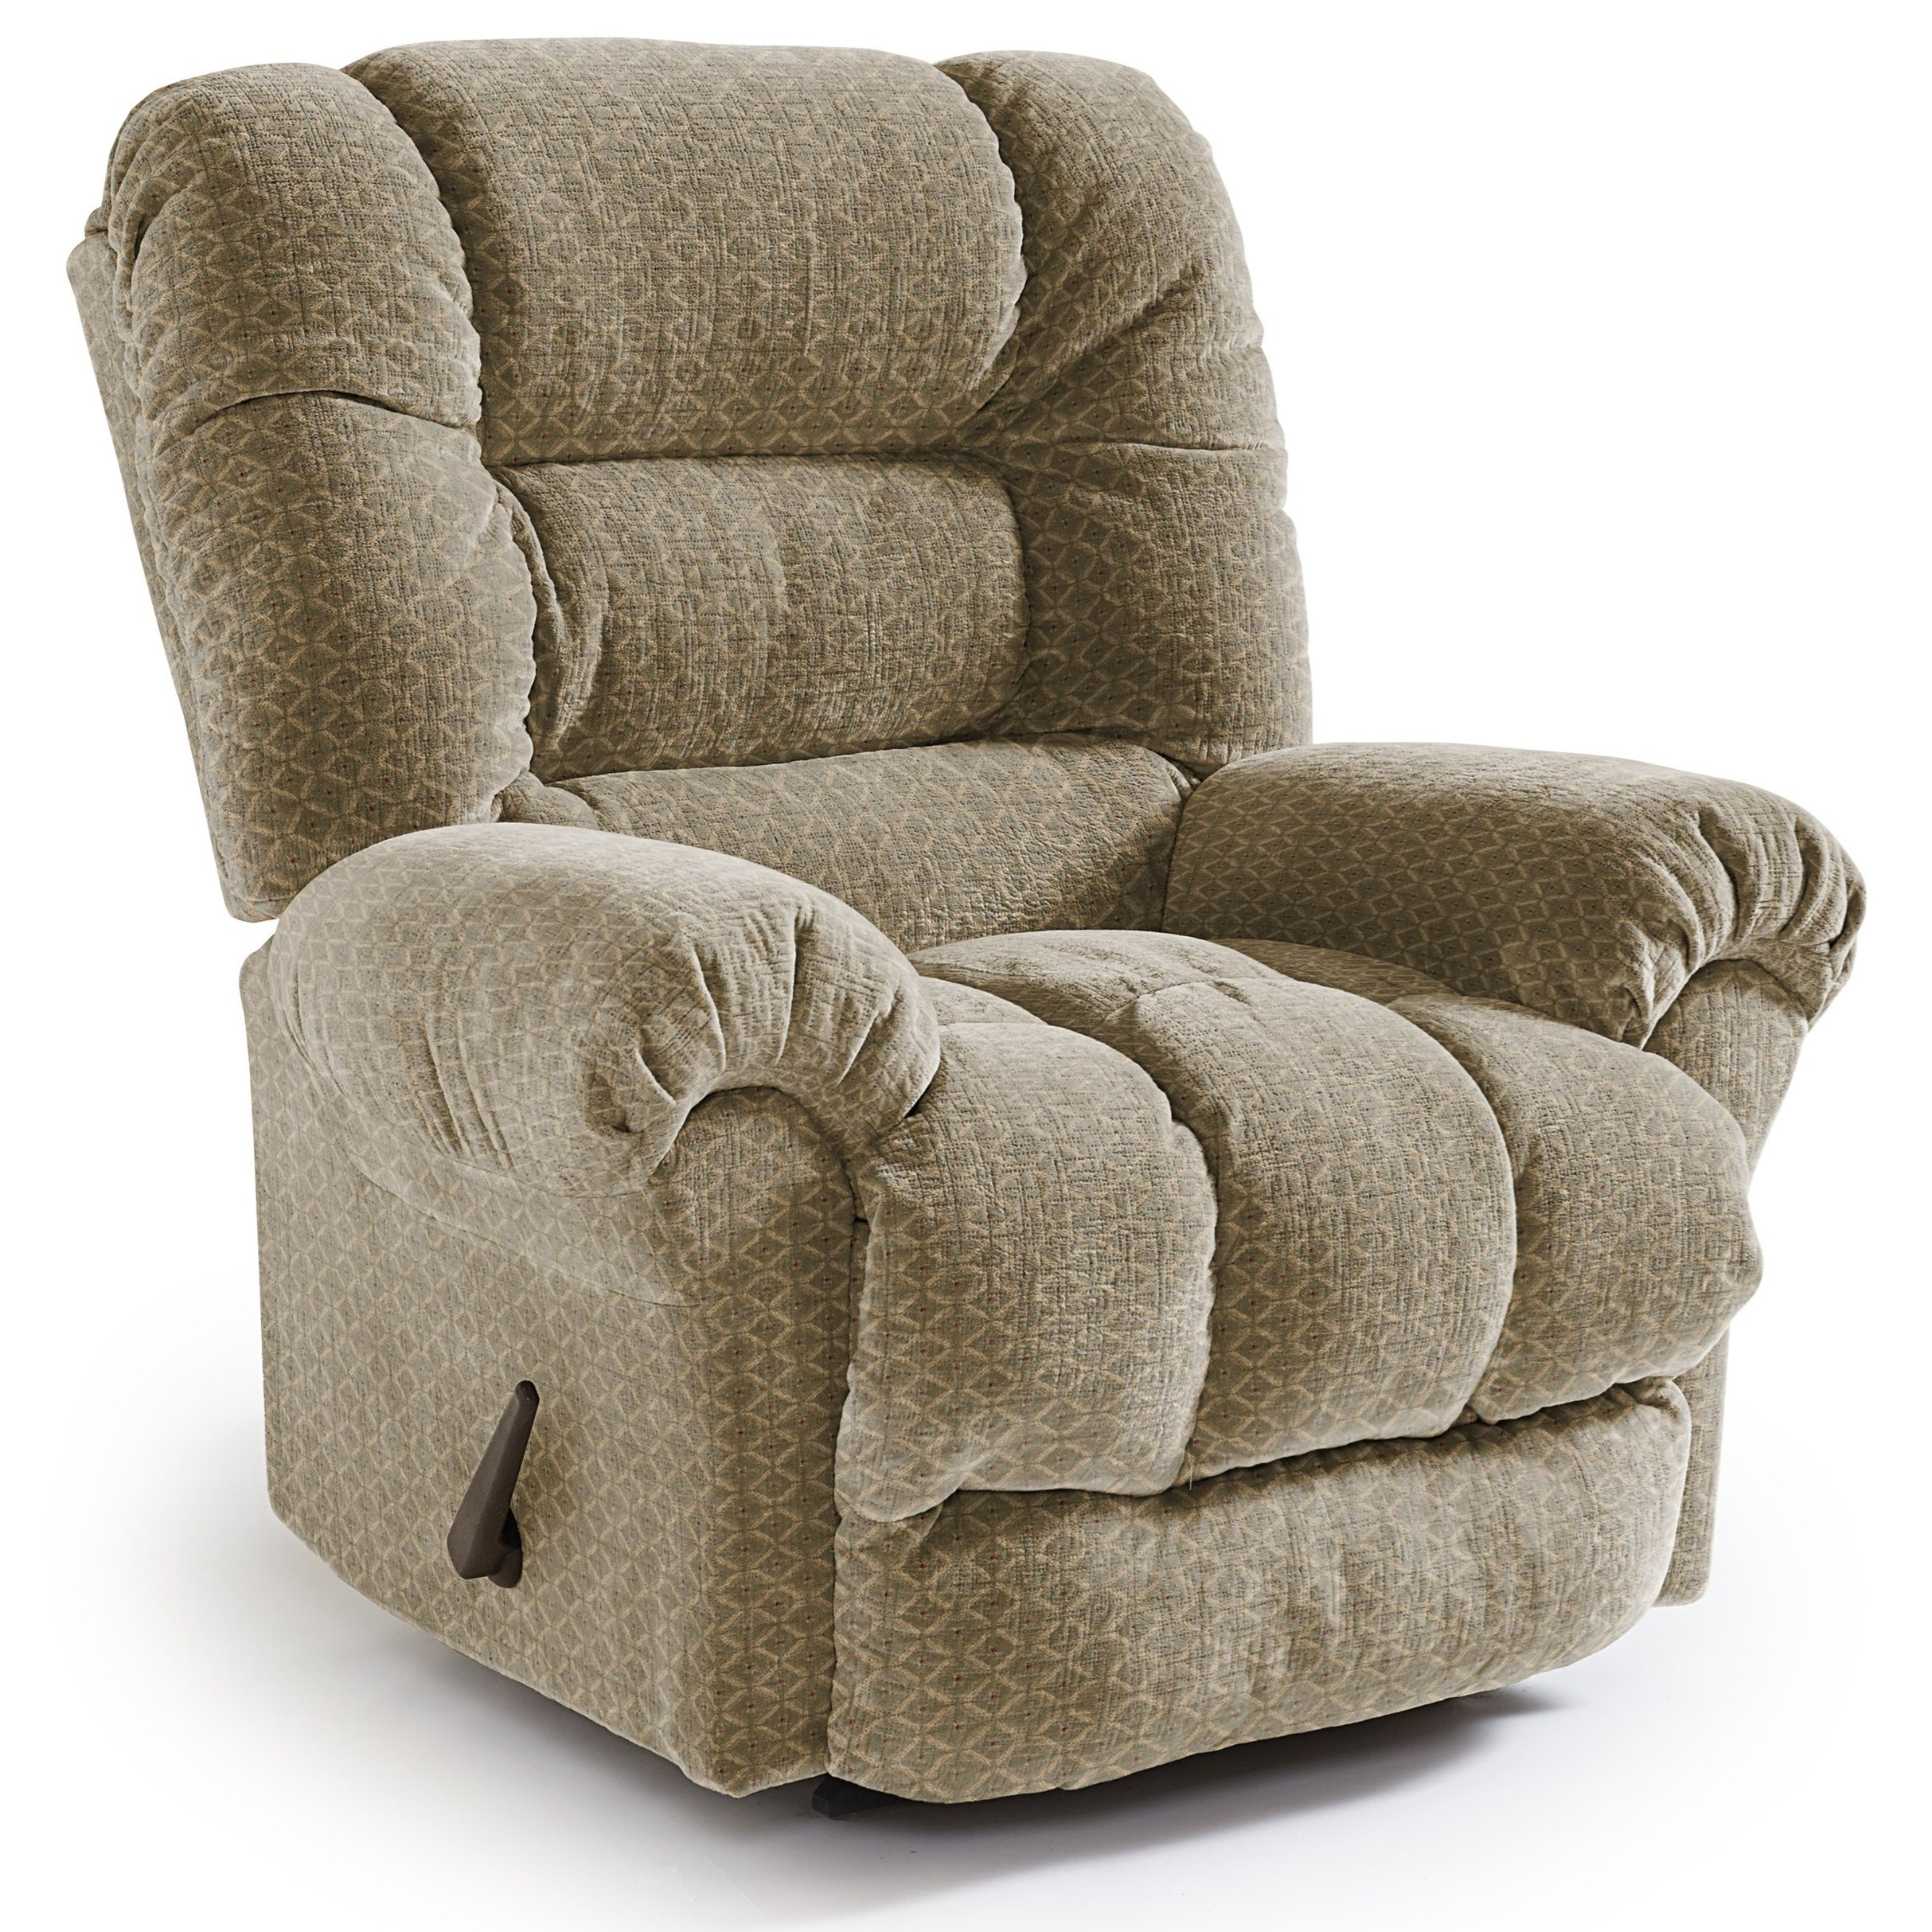 swivel reclining chairs small baby sitting chair pillow best home furnishings medium recliners 7mw29 seger